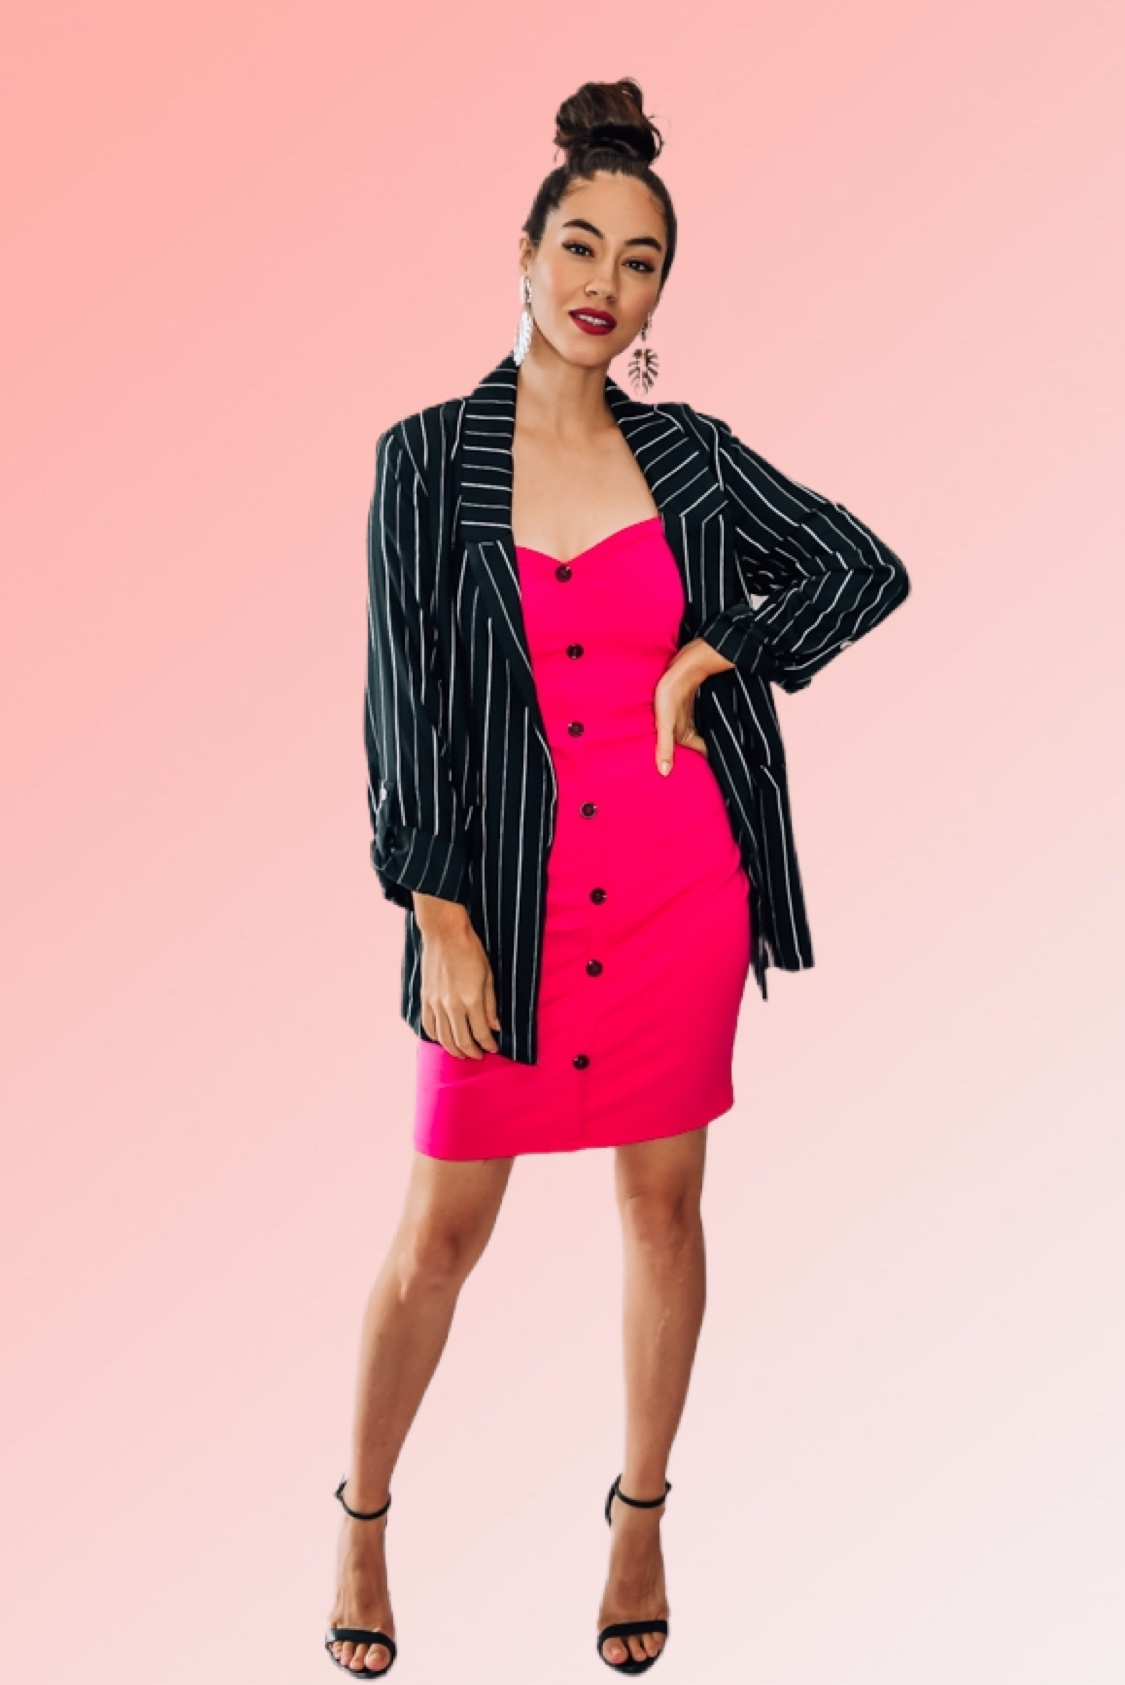 BLACK PIN STRIPED BLAZER. RELAXED FIT, ¾ SLEEVES WITH ROLL UP TAB BUTTON. 100% RAYON. PIPER IS 5'4, SIZE 0 WEARING A SMALL. NIKI IS A SIZE 14, WEARING A LARGE.  S 0-4 M 6-10 L 12-14